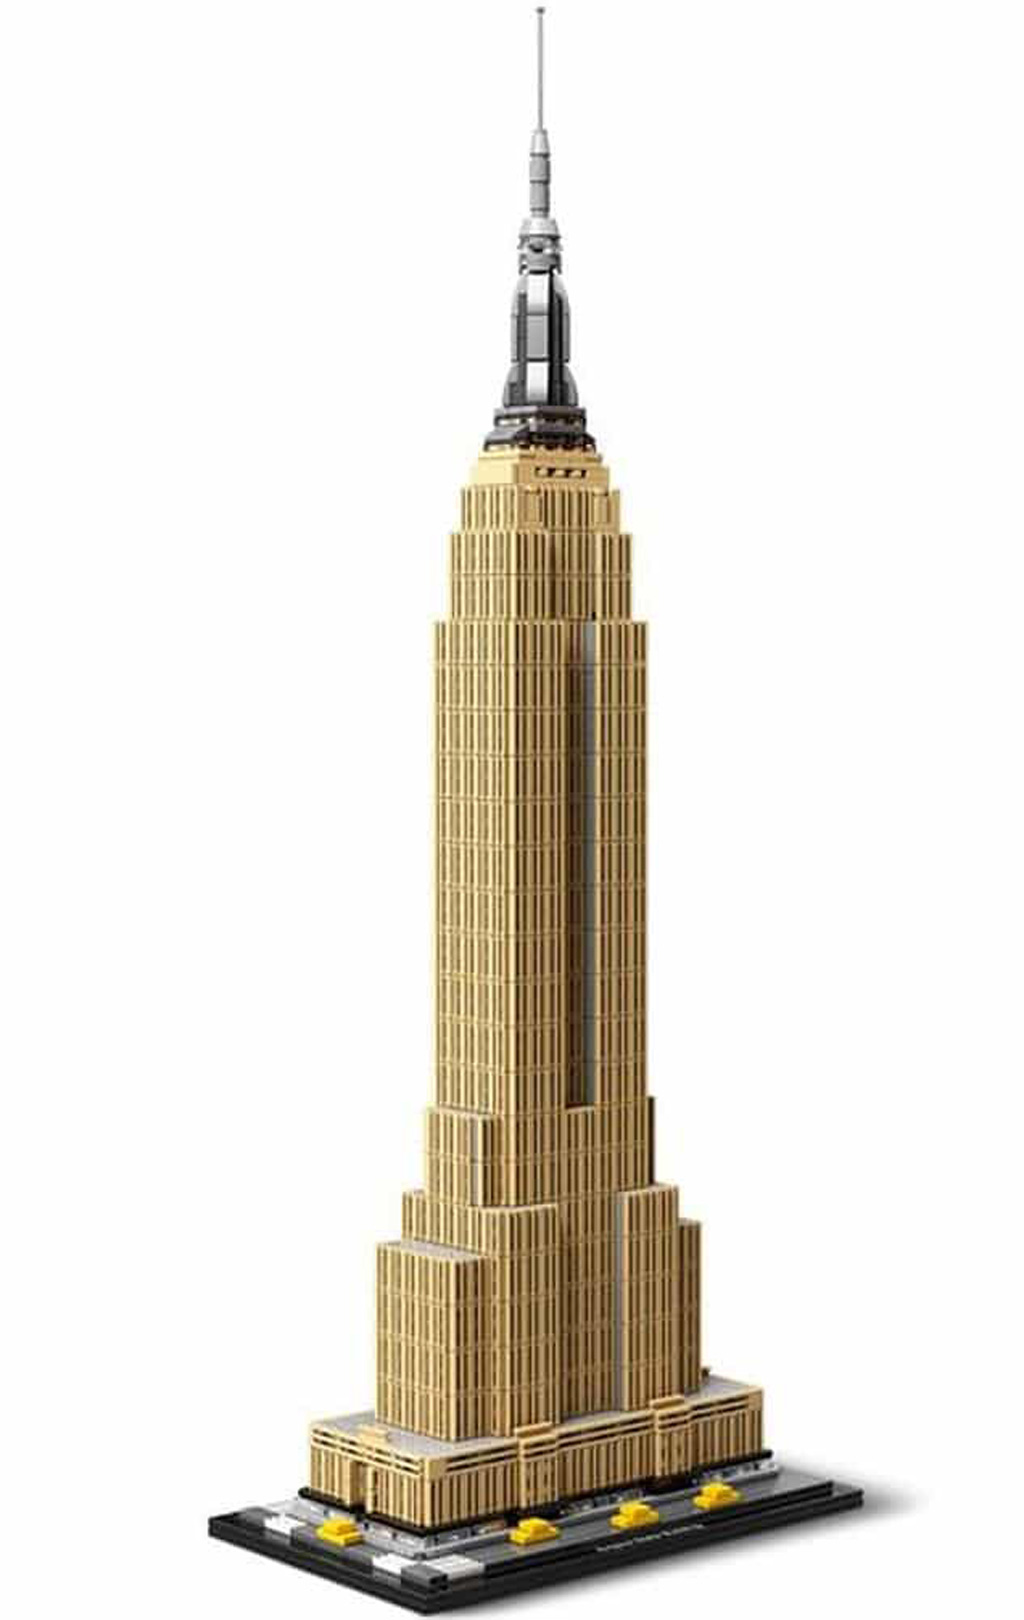 lego-architecture-empire-state-building-21046-2019-nyc zusammengebaut.com